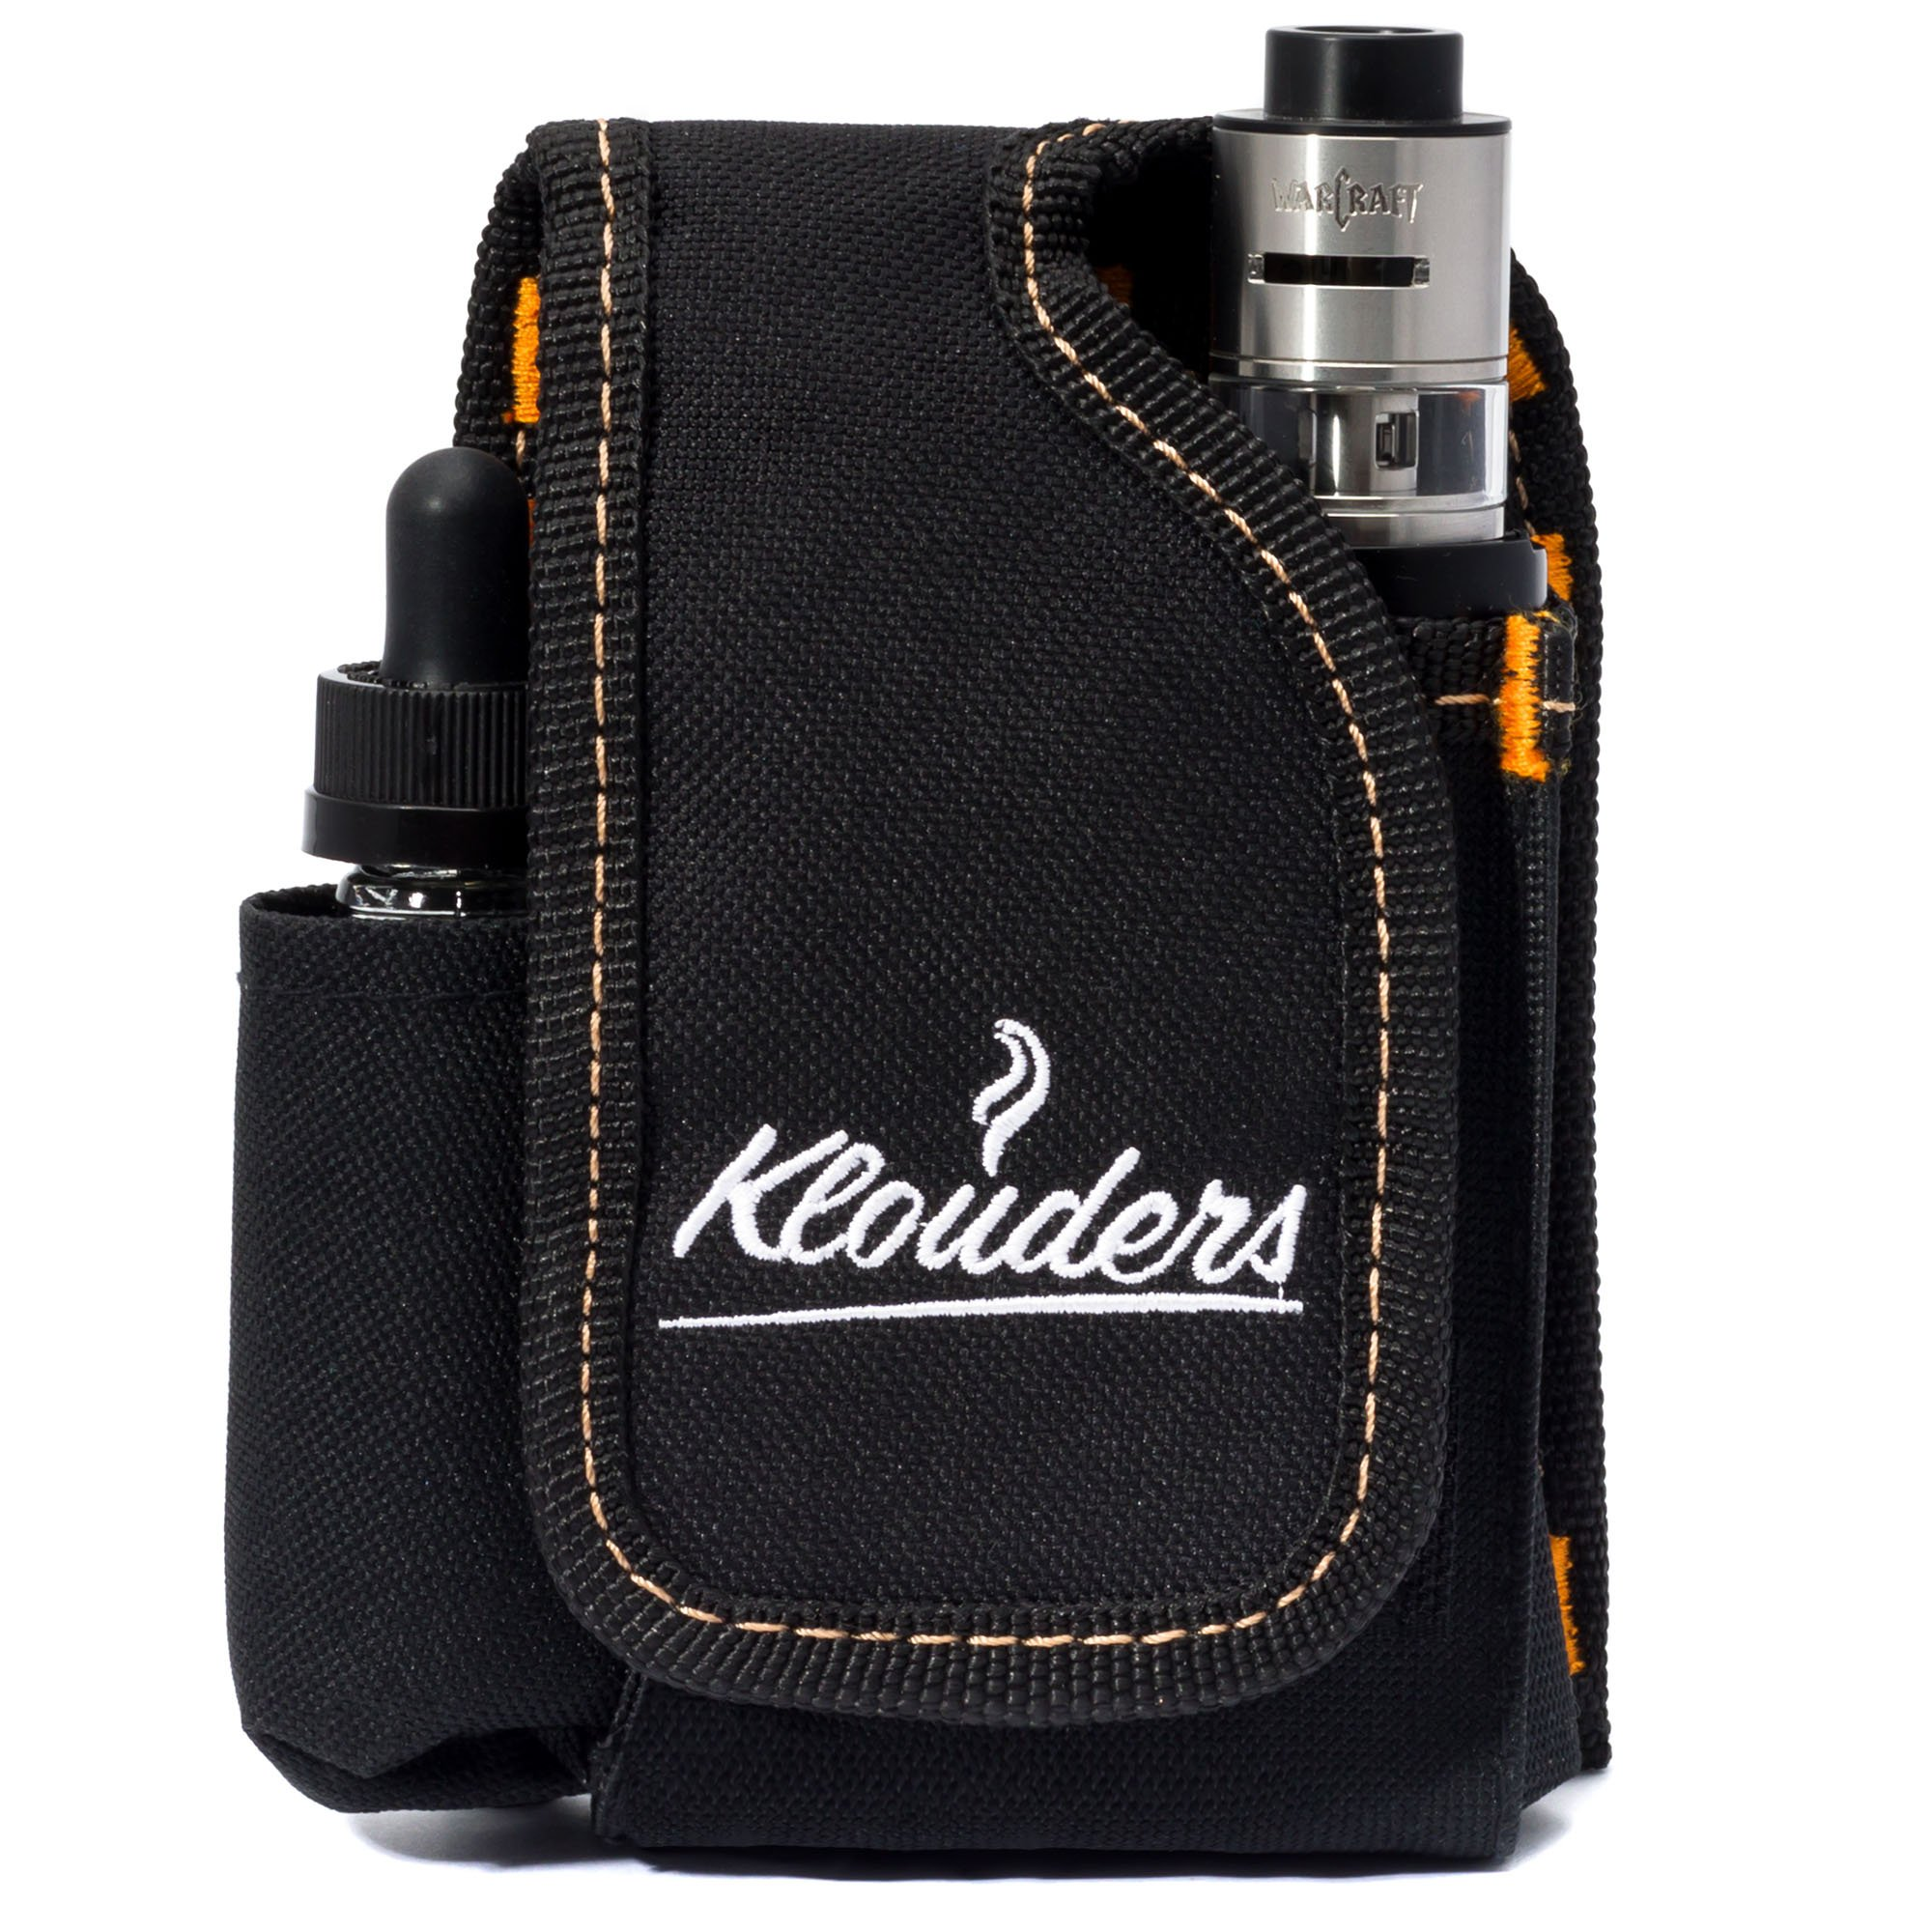 Vape Accessories, Vape Case, Vapor Pouch, Vapor Carrying Bag for Travel Vaping Supplies Organizing Your Box Mod, eJuice, Battery, Tank Holder, Holster Vaporizer, Black, Klouders [CASE ONLY]